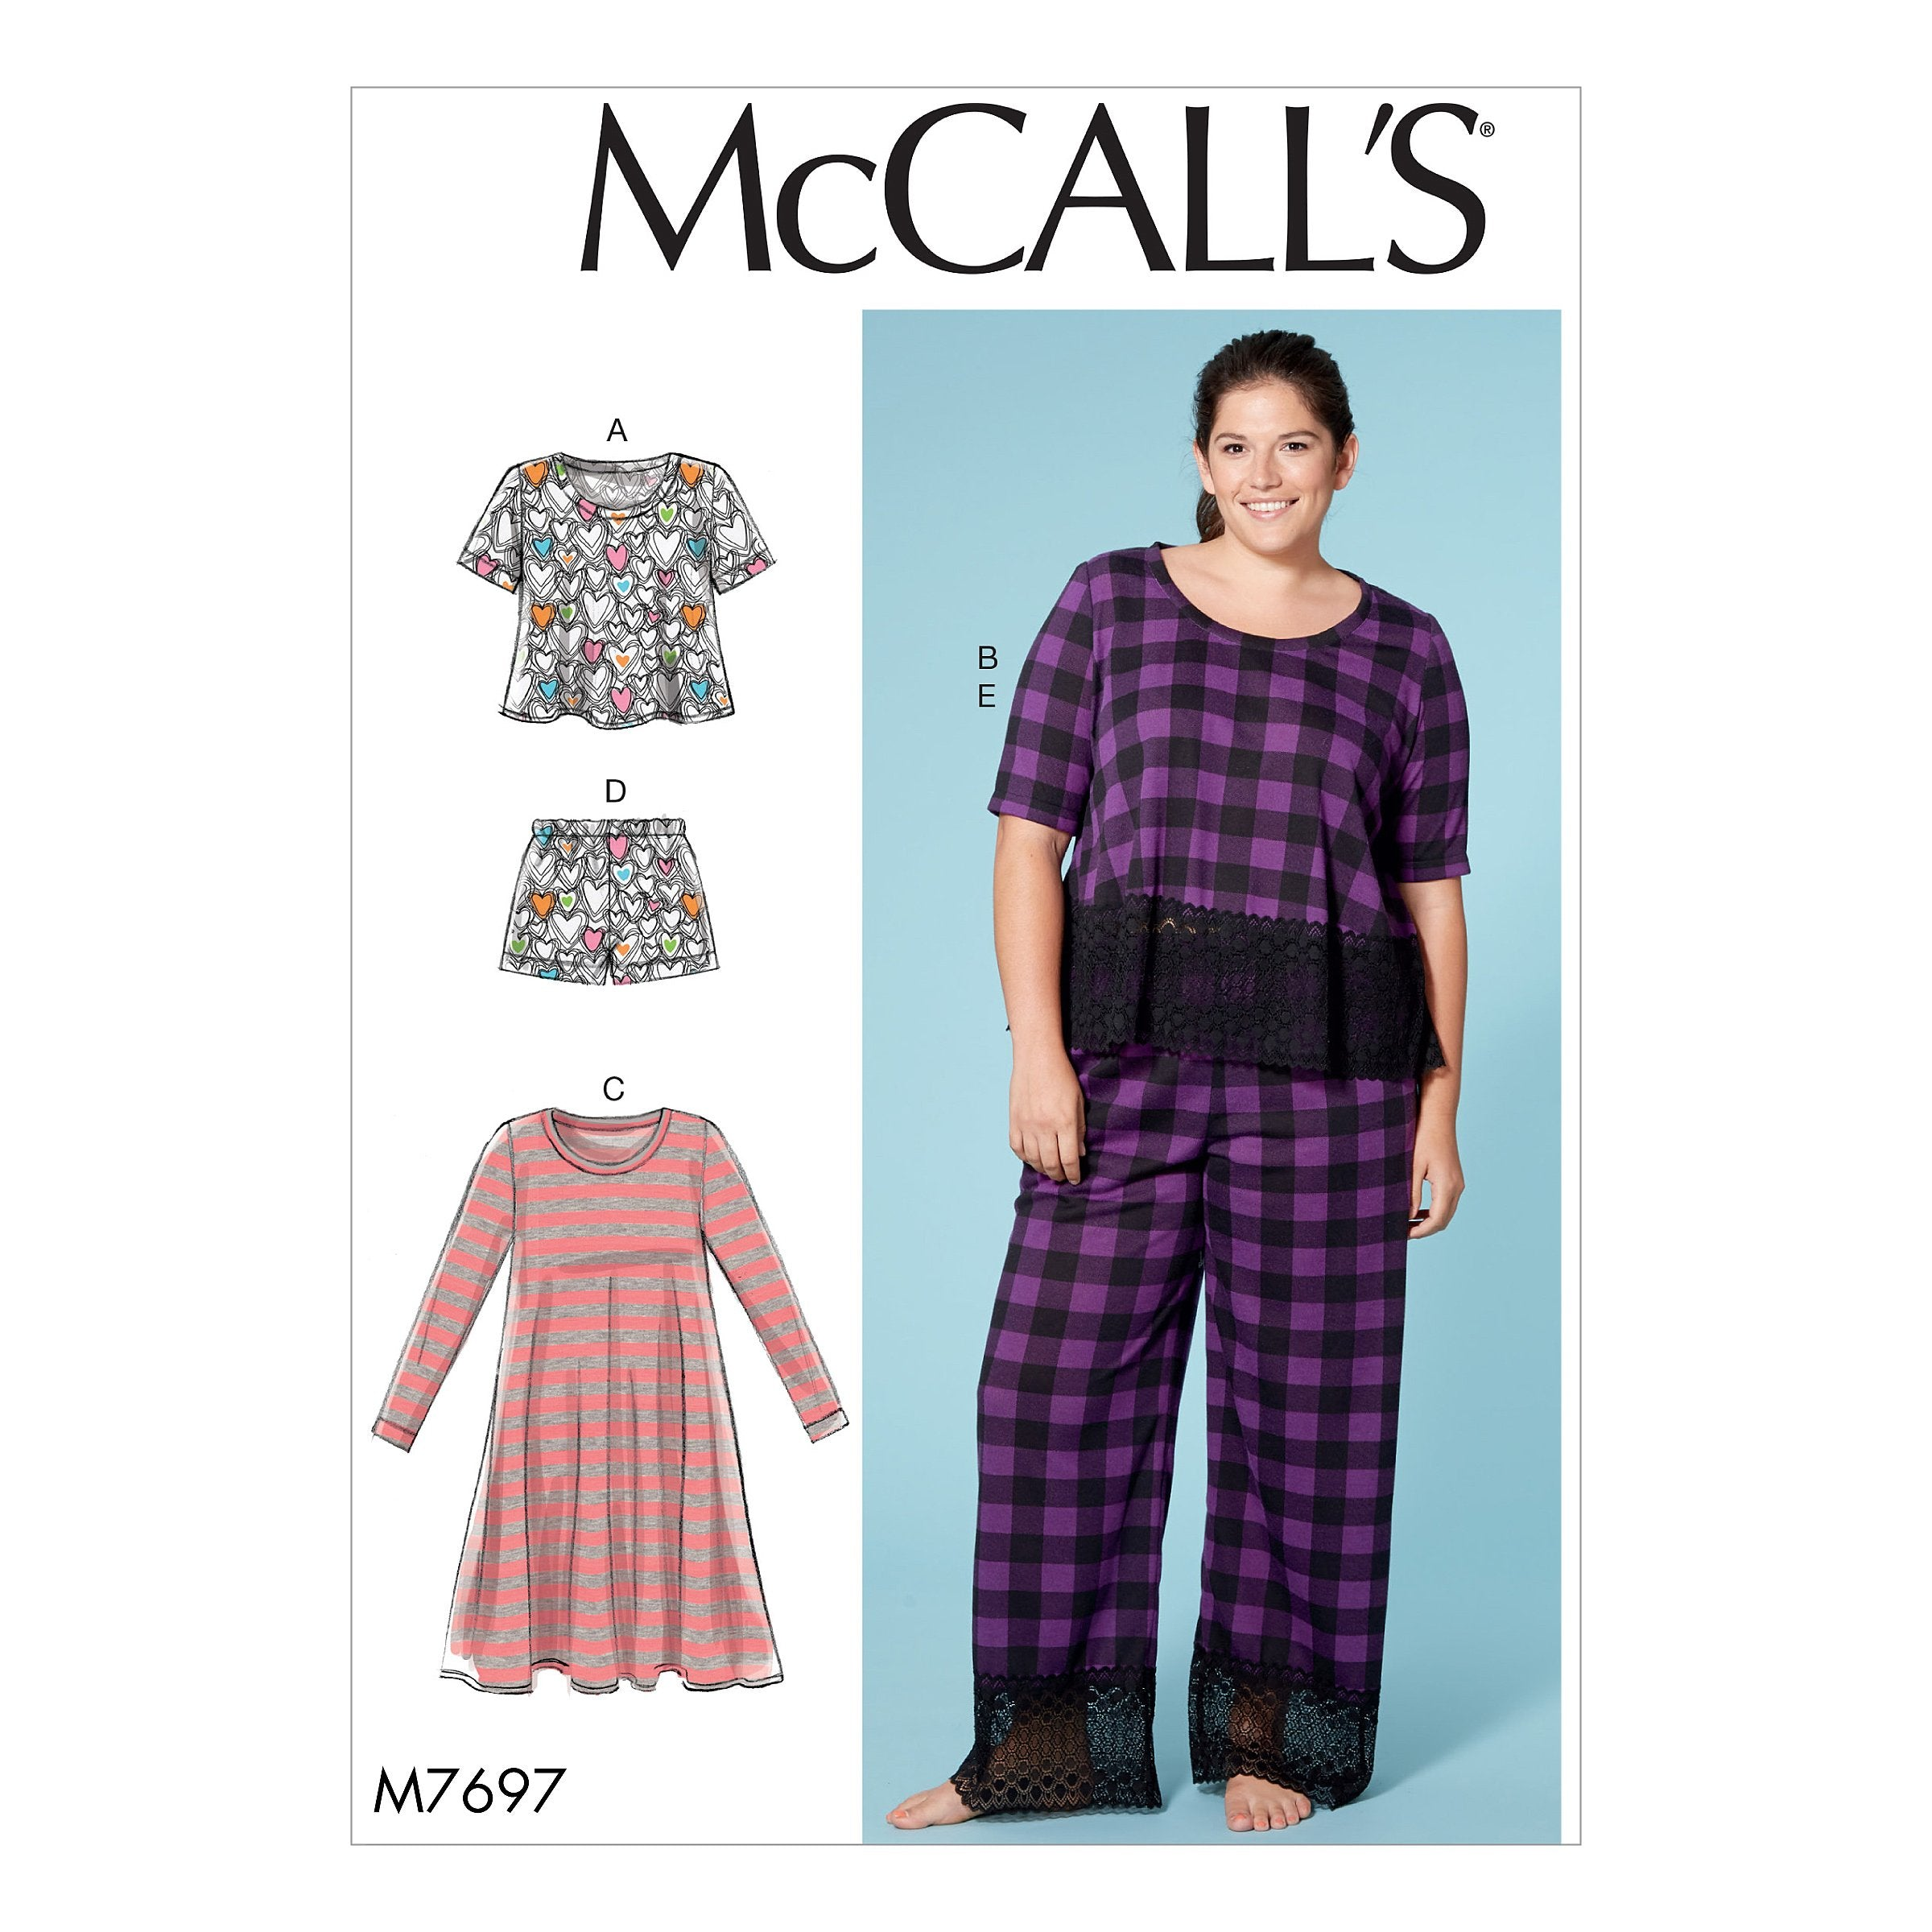 M7697 Misses'/Women's Lounge Wear Pattern